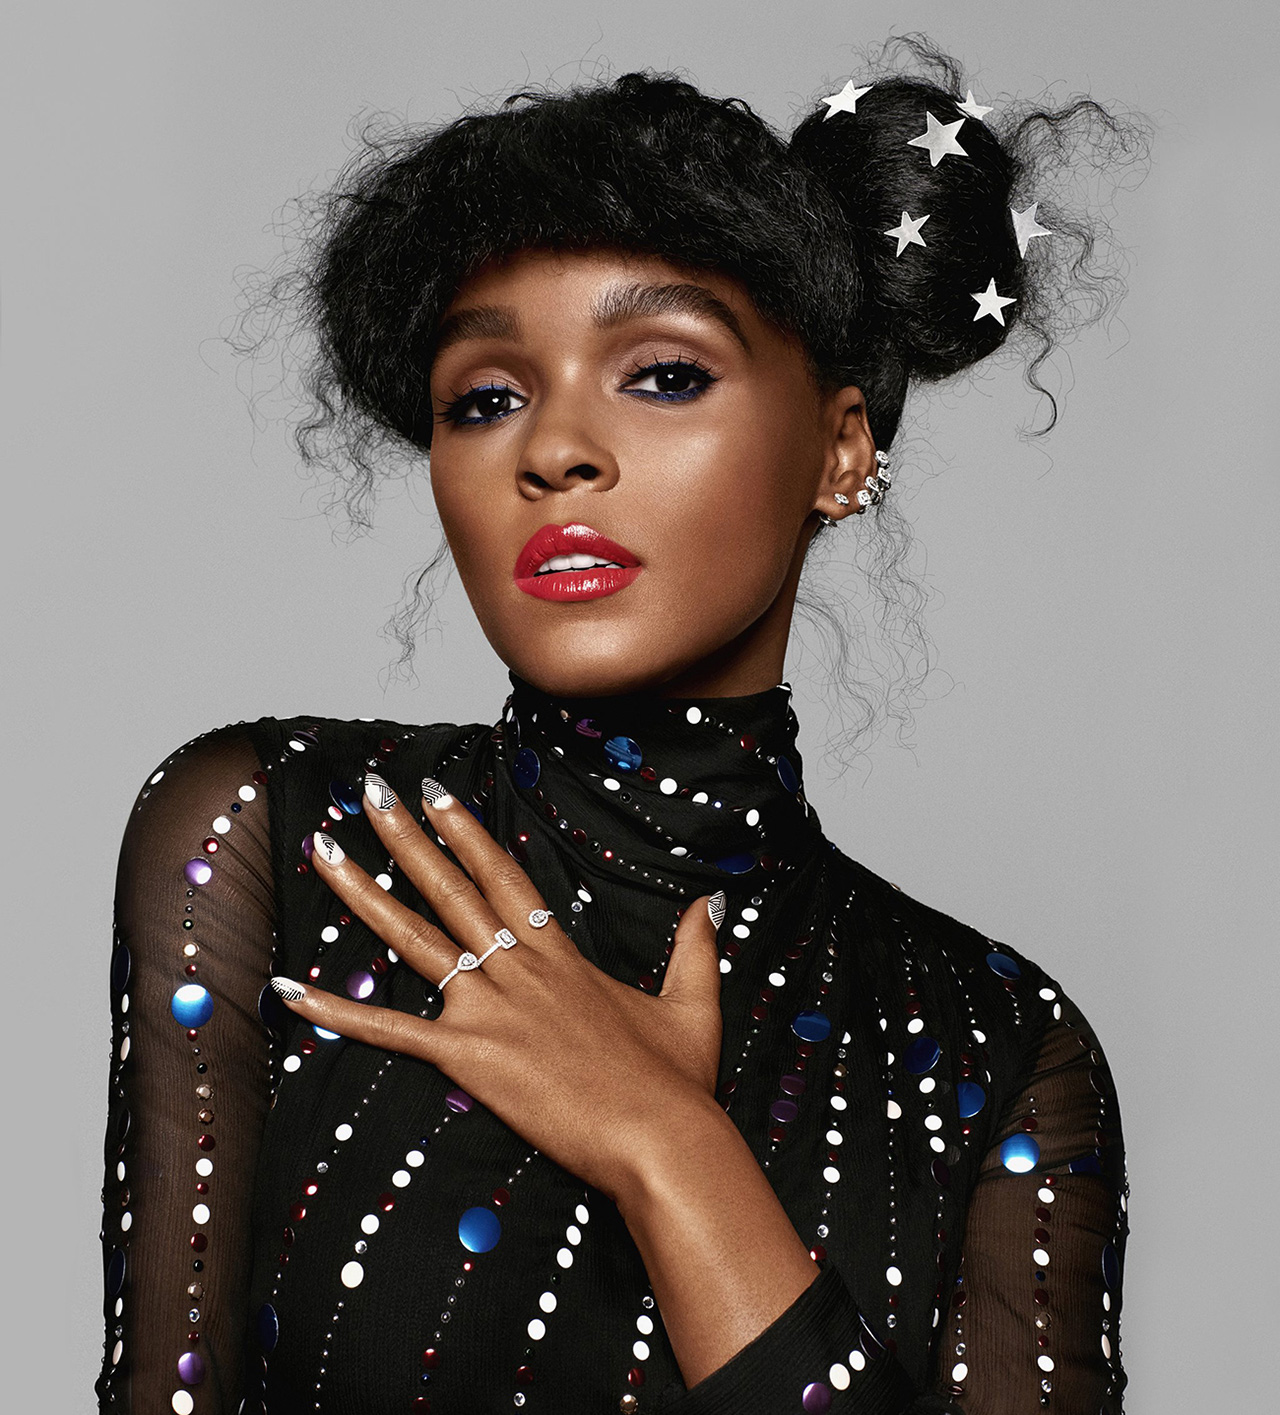 Janelle Monae hair in bun with stars